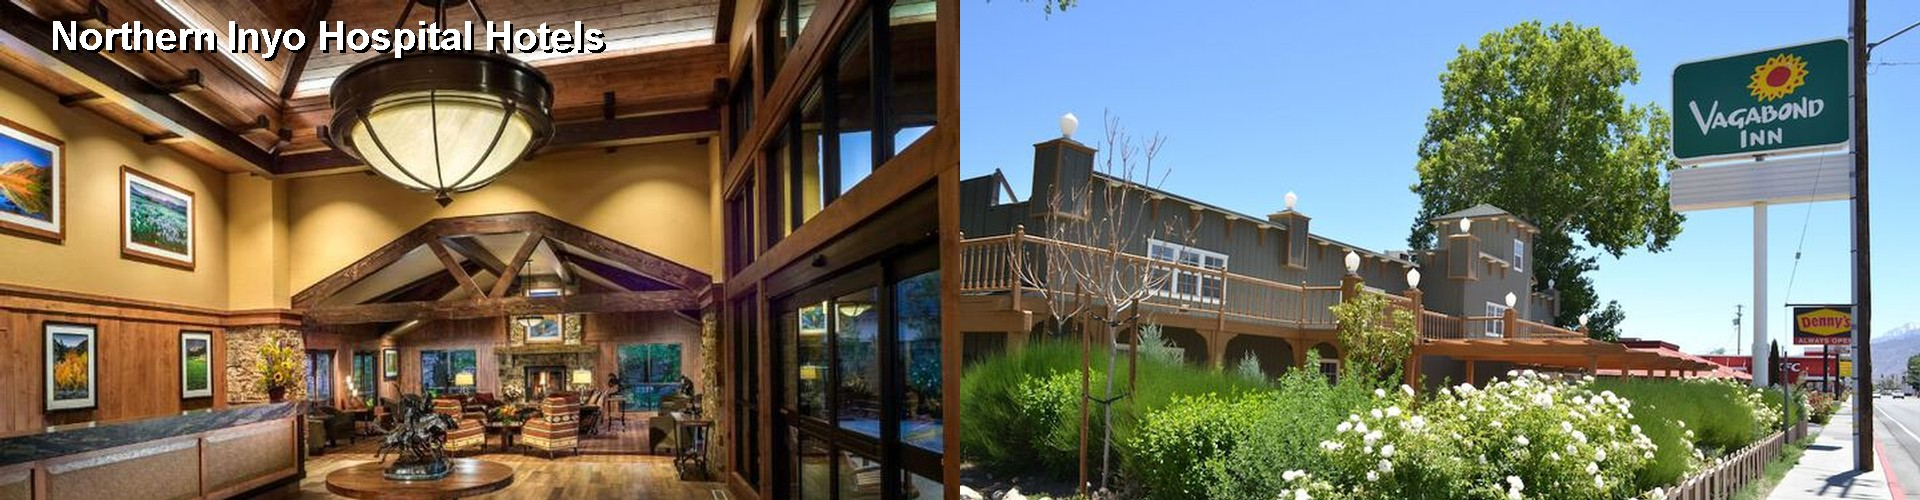 4 Best Hotels near Northern Inyo Hospital